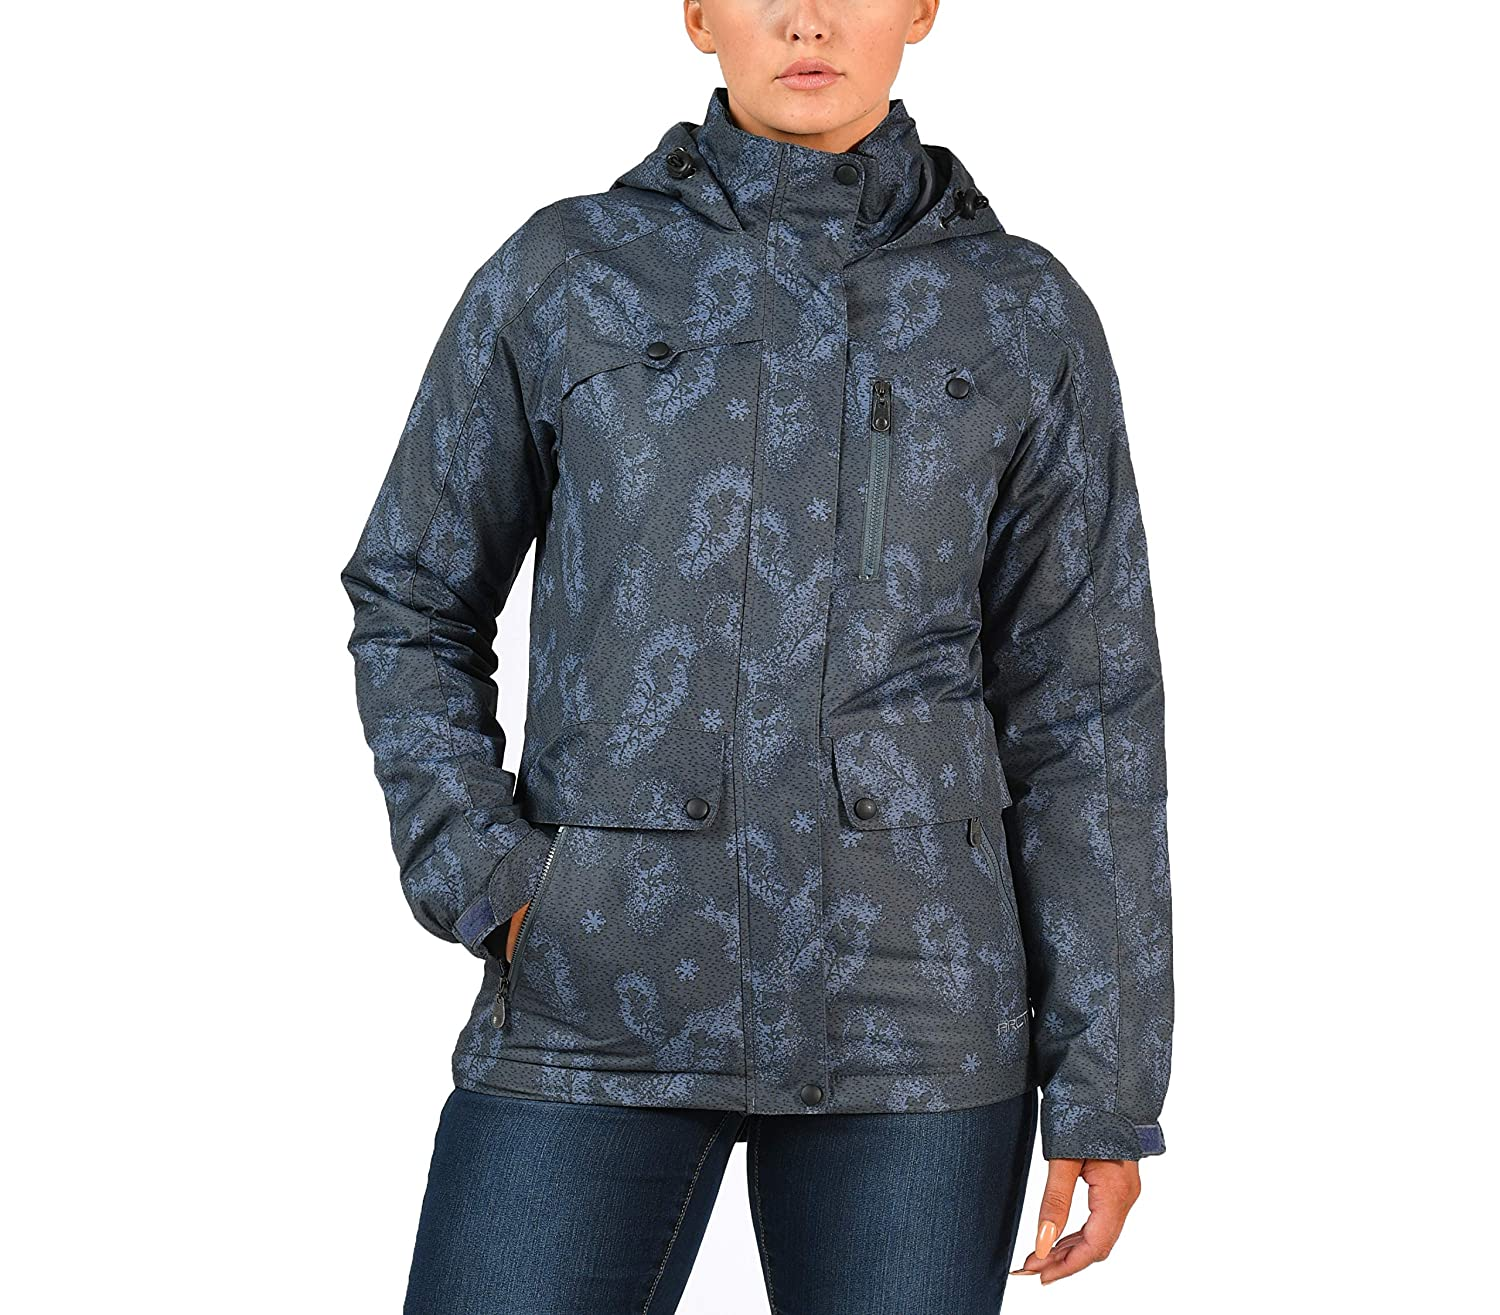 Arctix Women's Daybreak Insulated Jacket, Large, Floral Grey